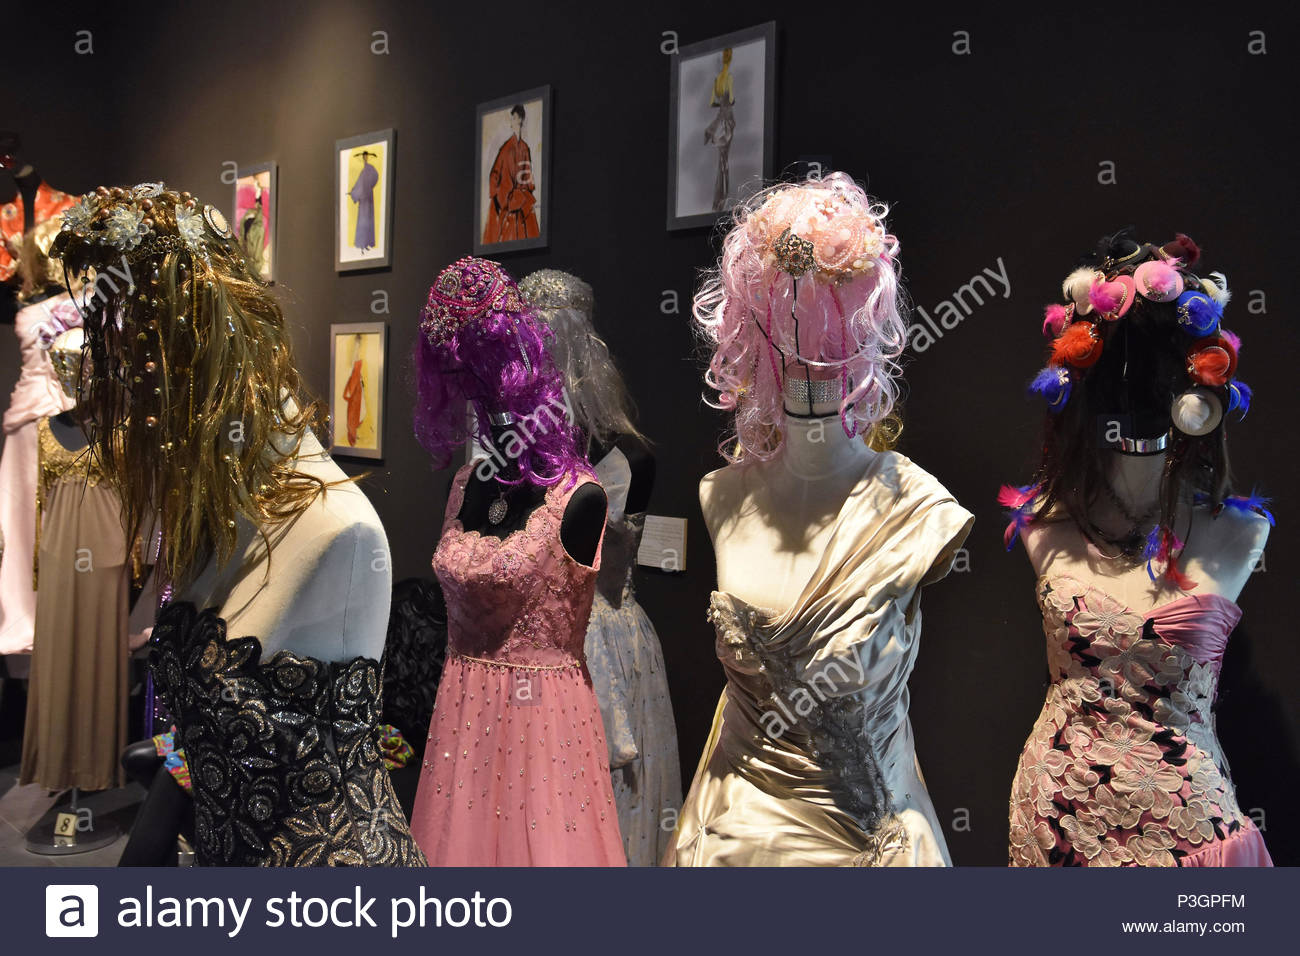 Figures Wearing Dresses From Famous Fashion Designers One Of The Haute Couture Collections Displayed At Automobile And Fashion Museum In Malaga Spain Stock Photo Alamy